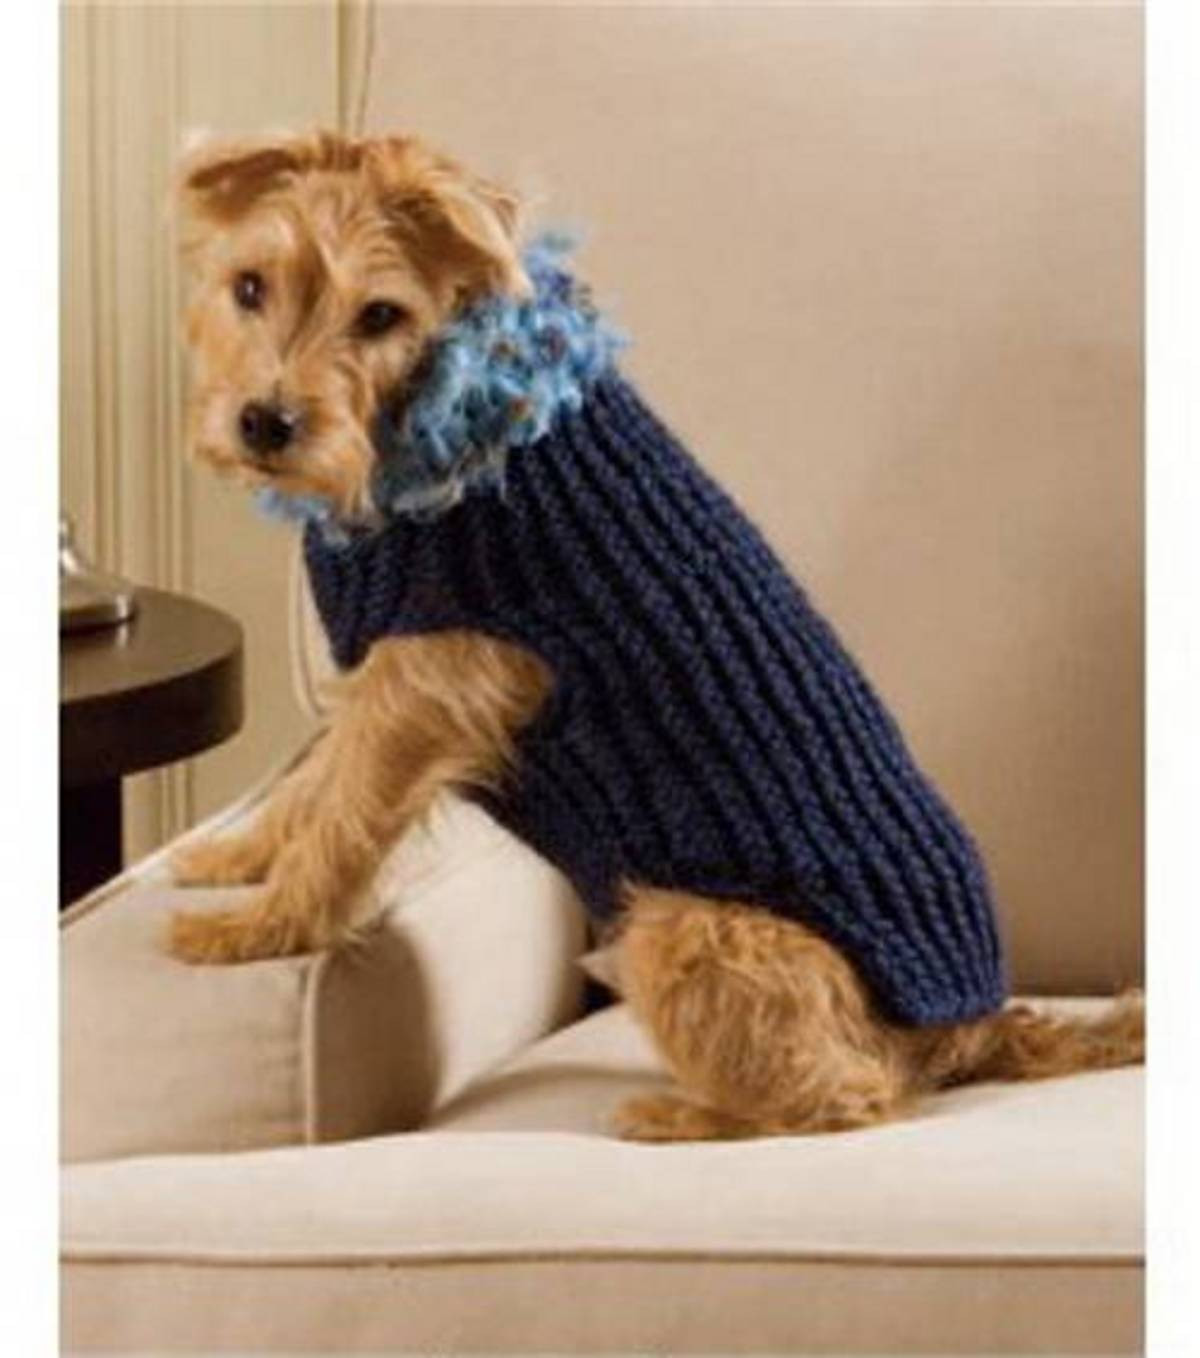 Dog Sweater Patterns Elegant Easy to Loom Dog Sweater at Joann Of Unique 41 Photos Dog Sweater Patterns